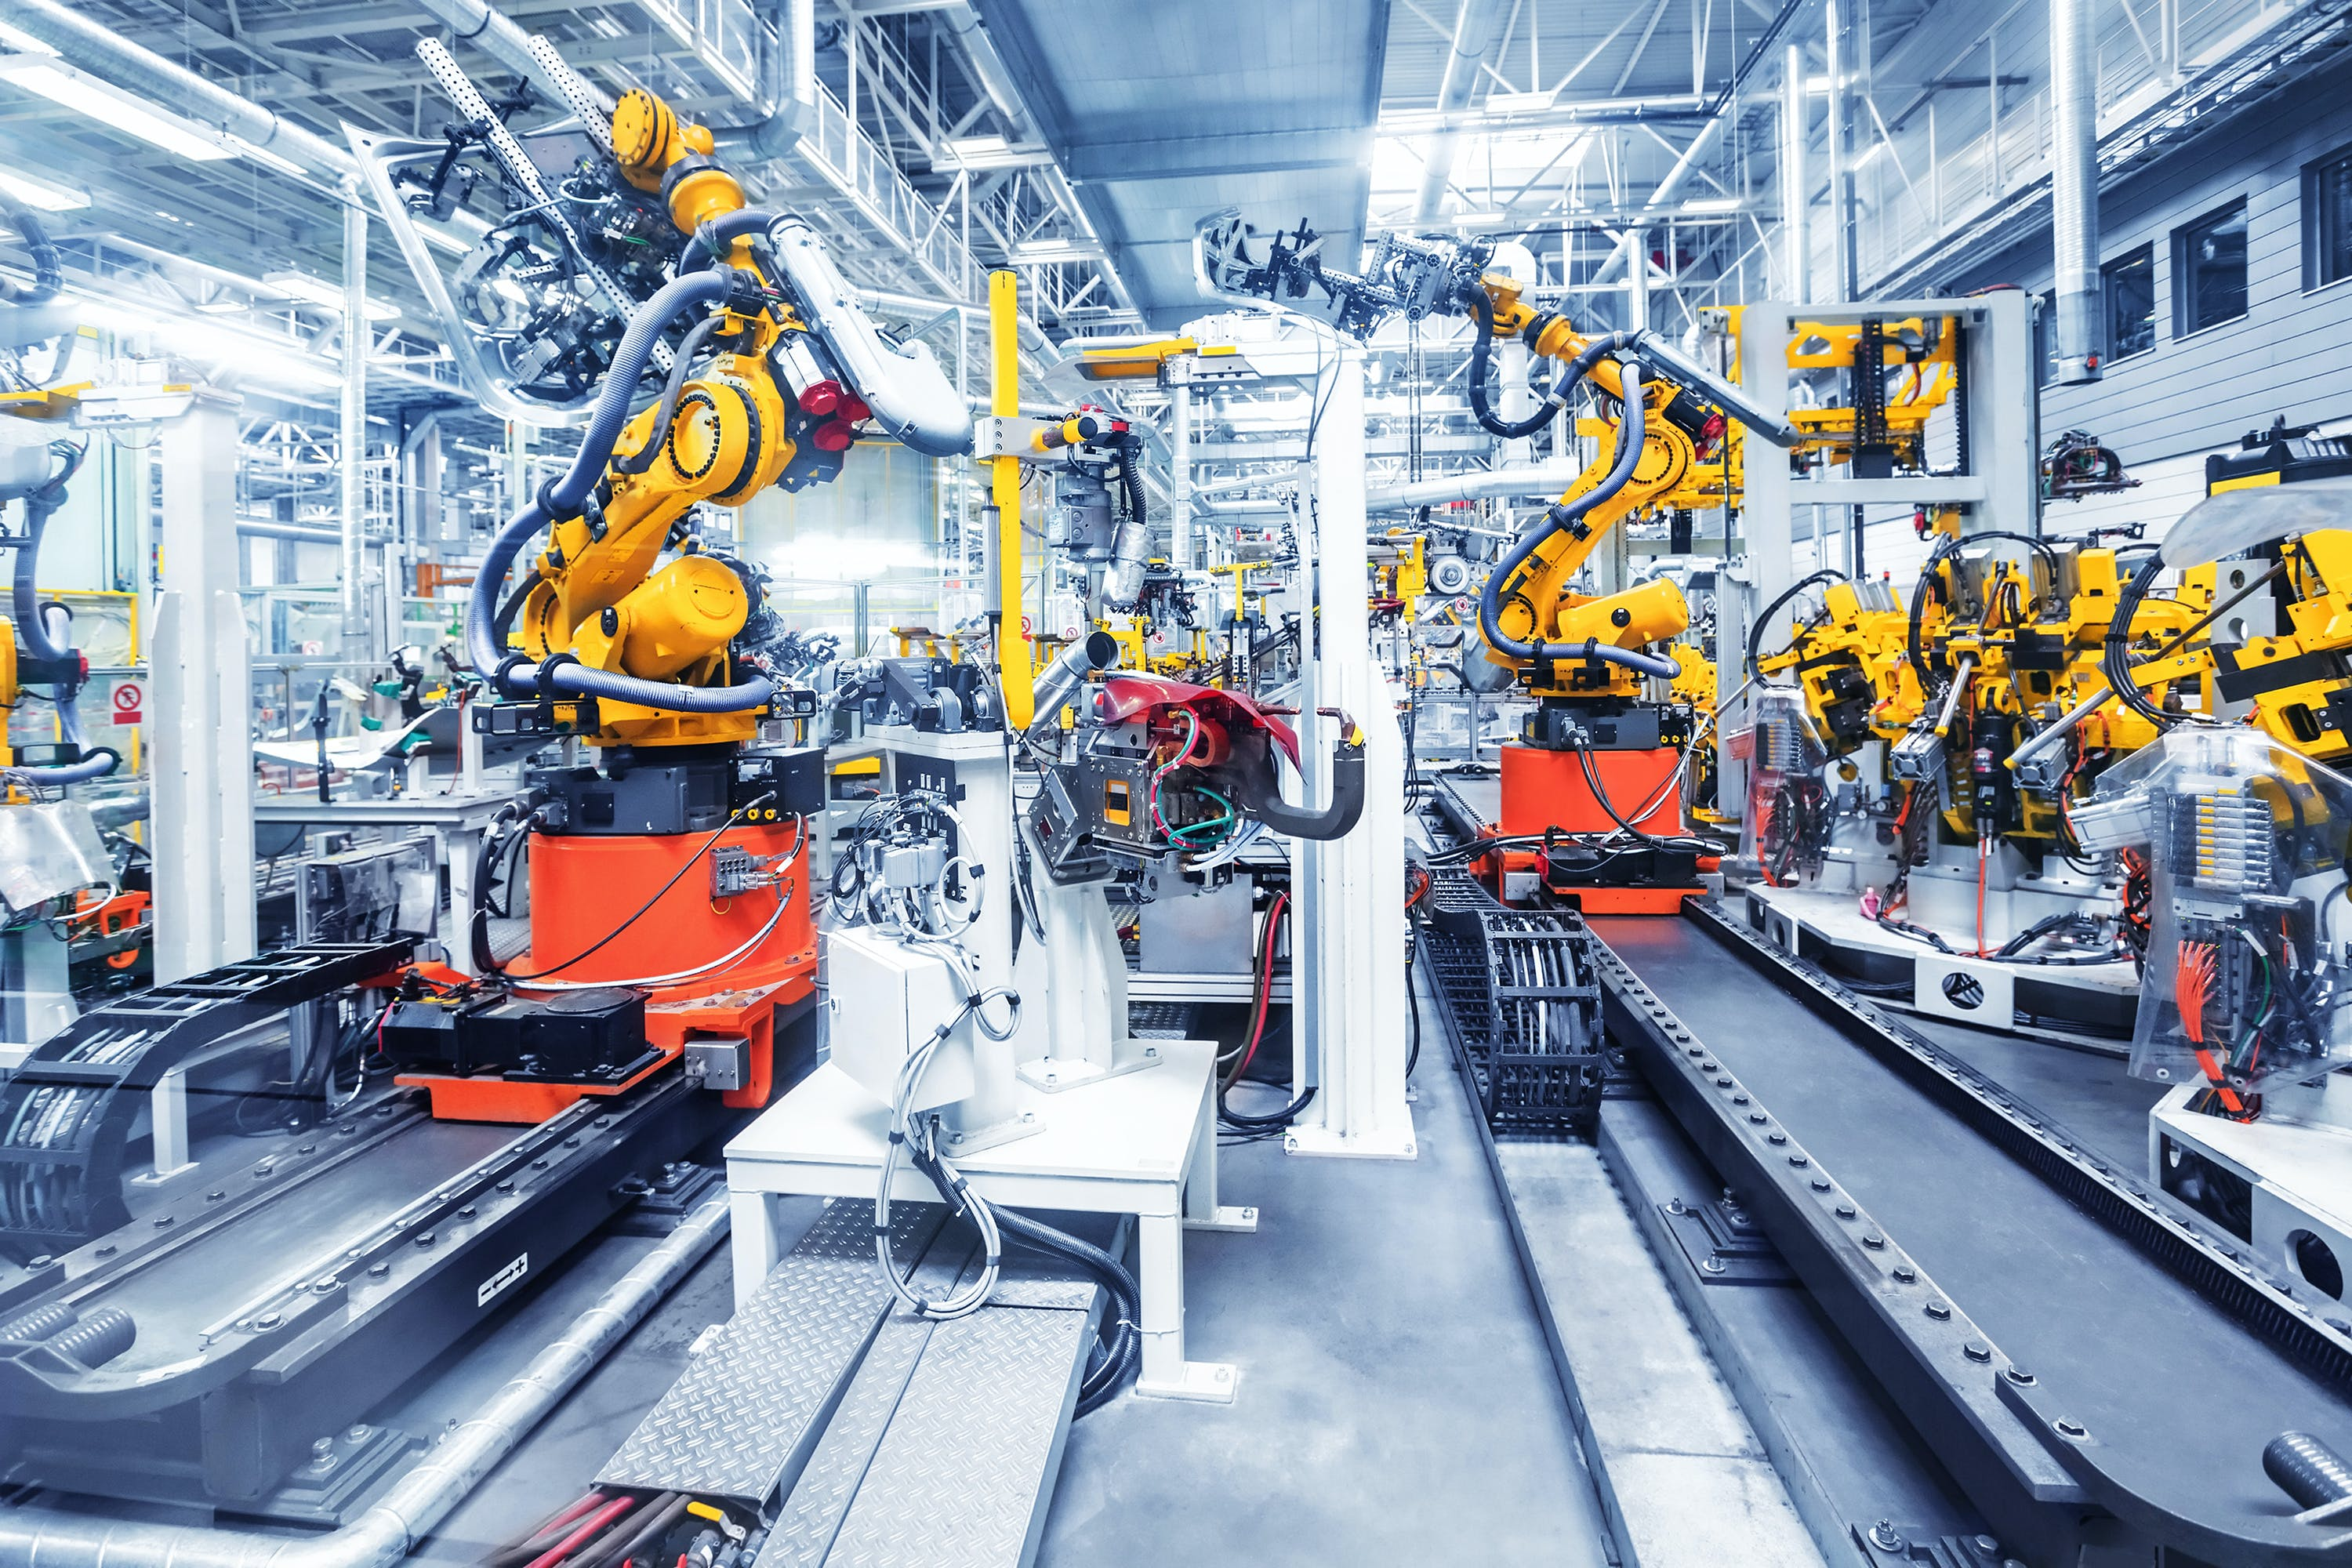 Inside of a factory with robotic arms assembling large machinery